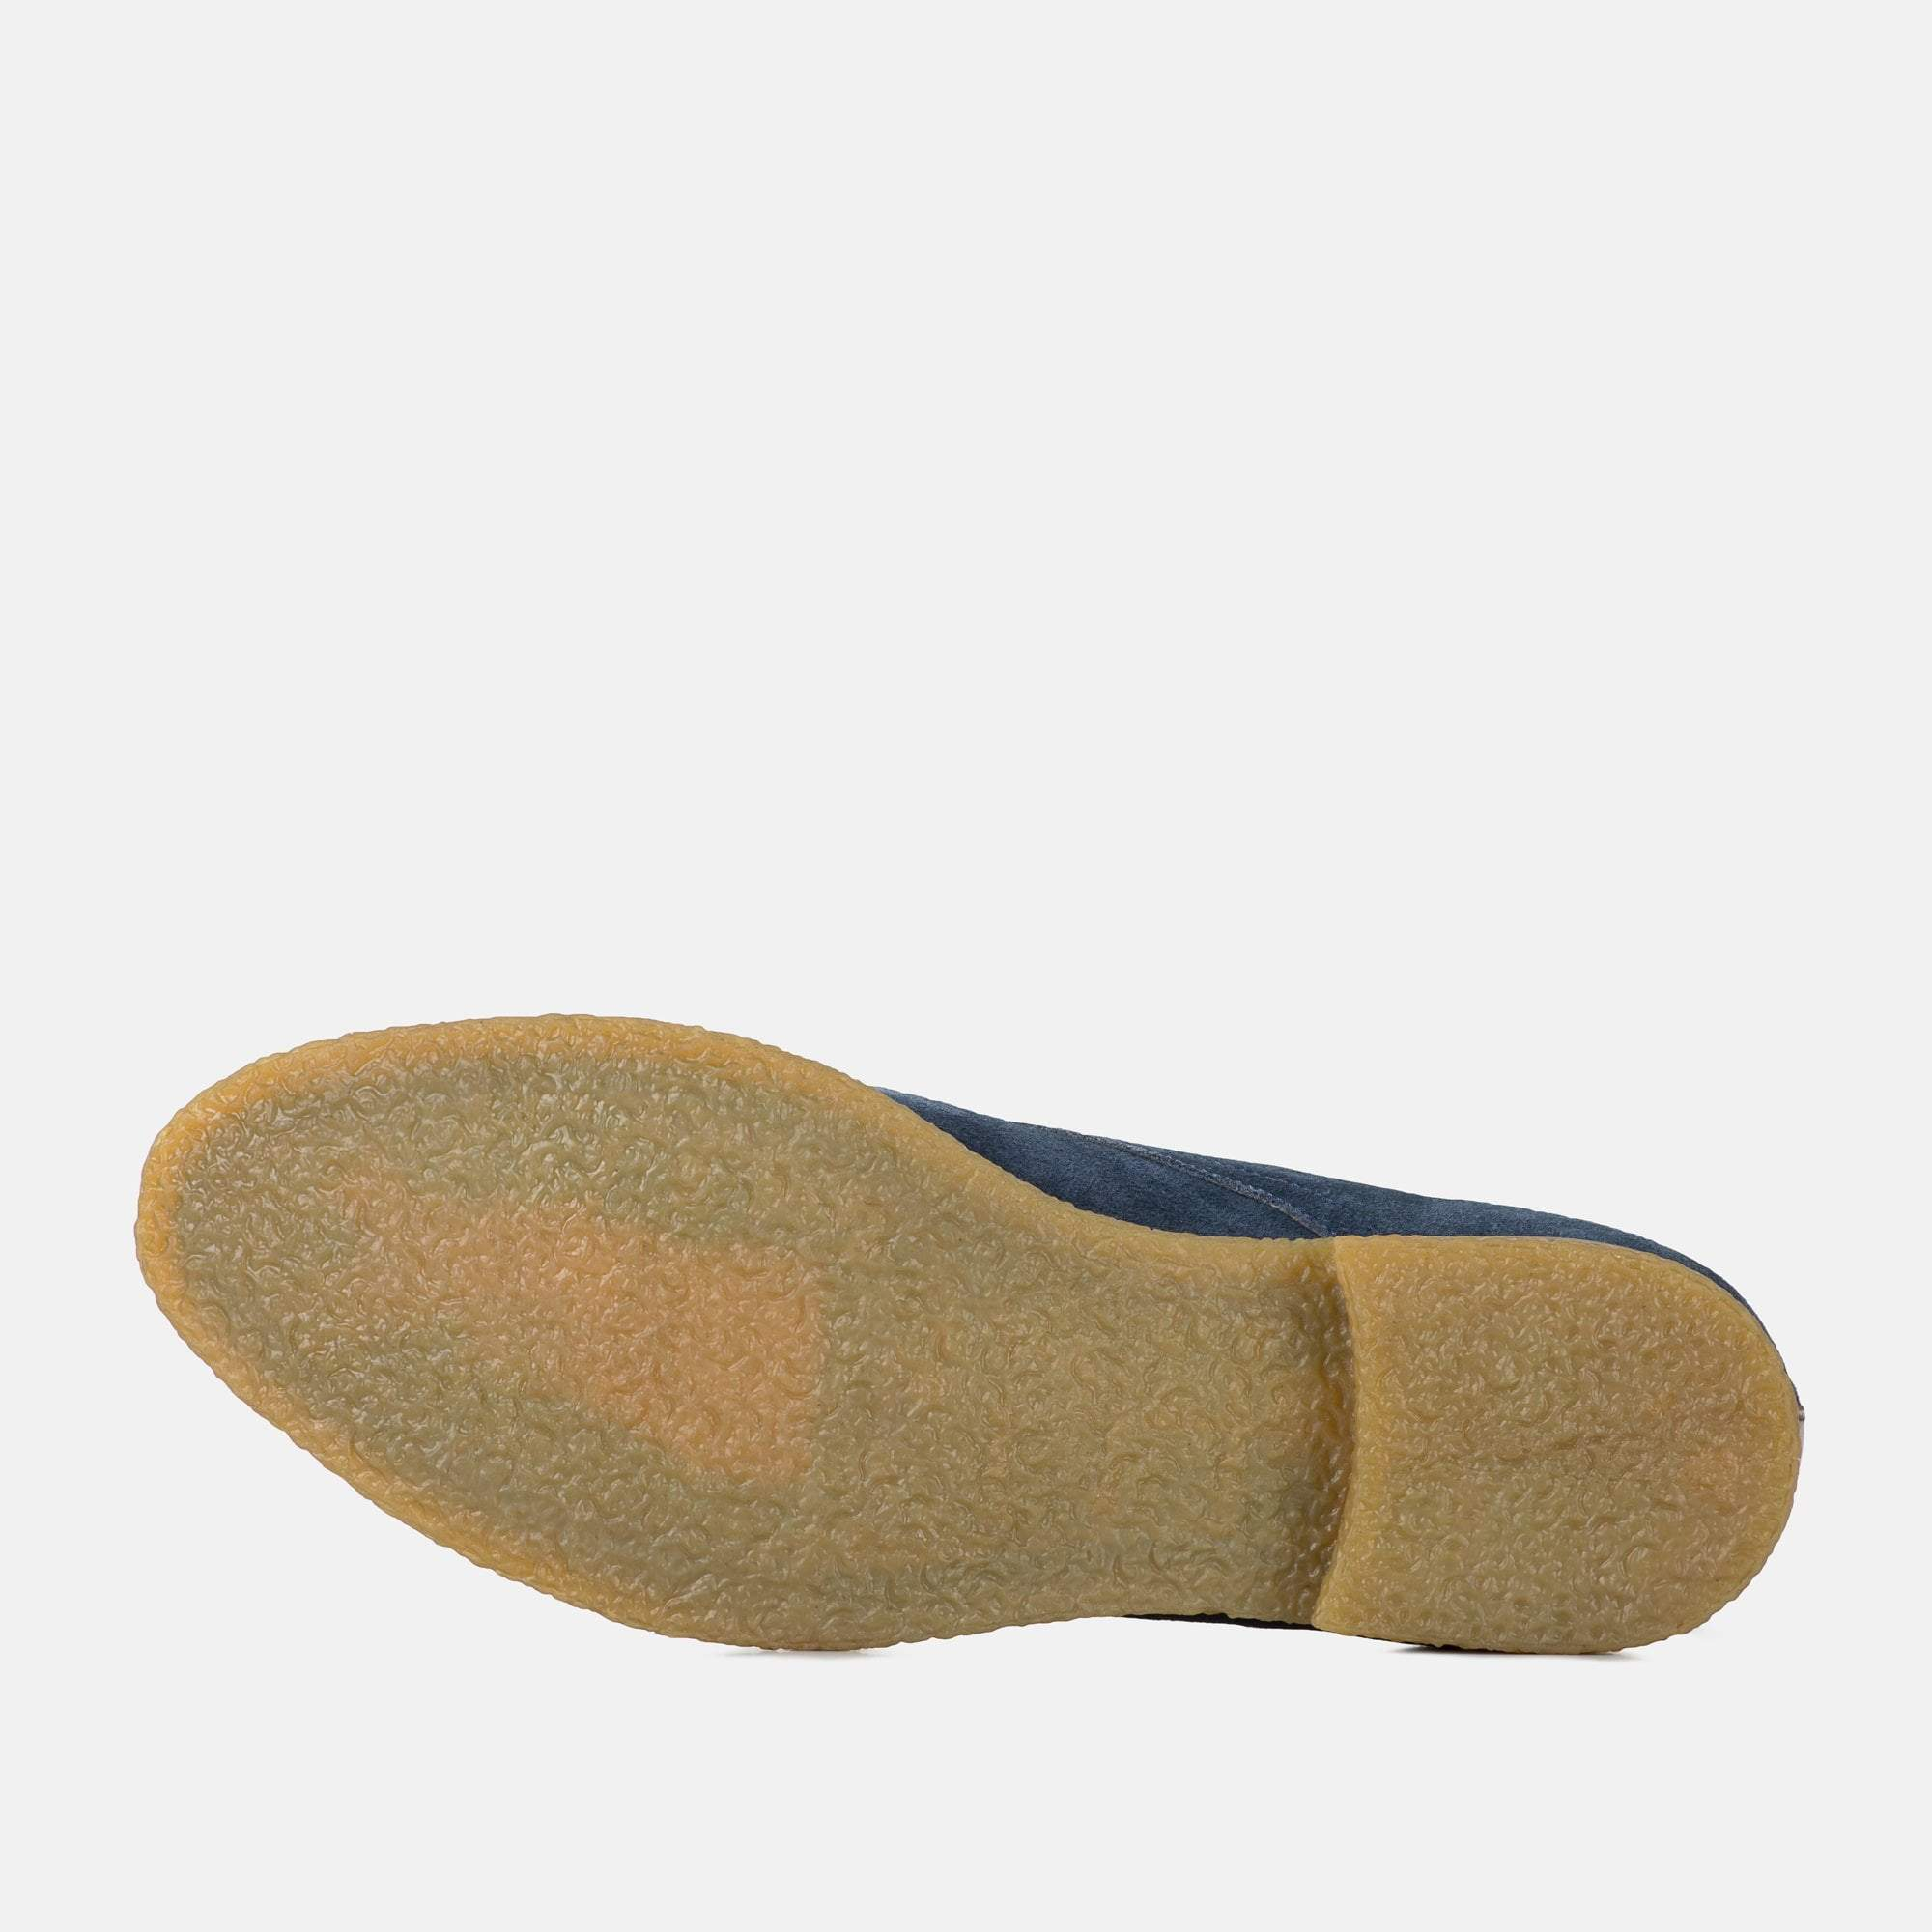 Redfoot Footwear UK 6 / EURO 39 / US 7 / Grey / Suede JACKSON NAVY